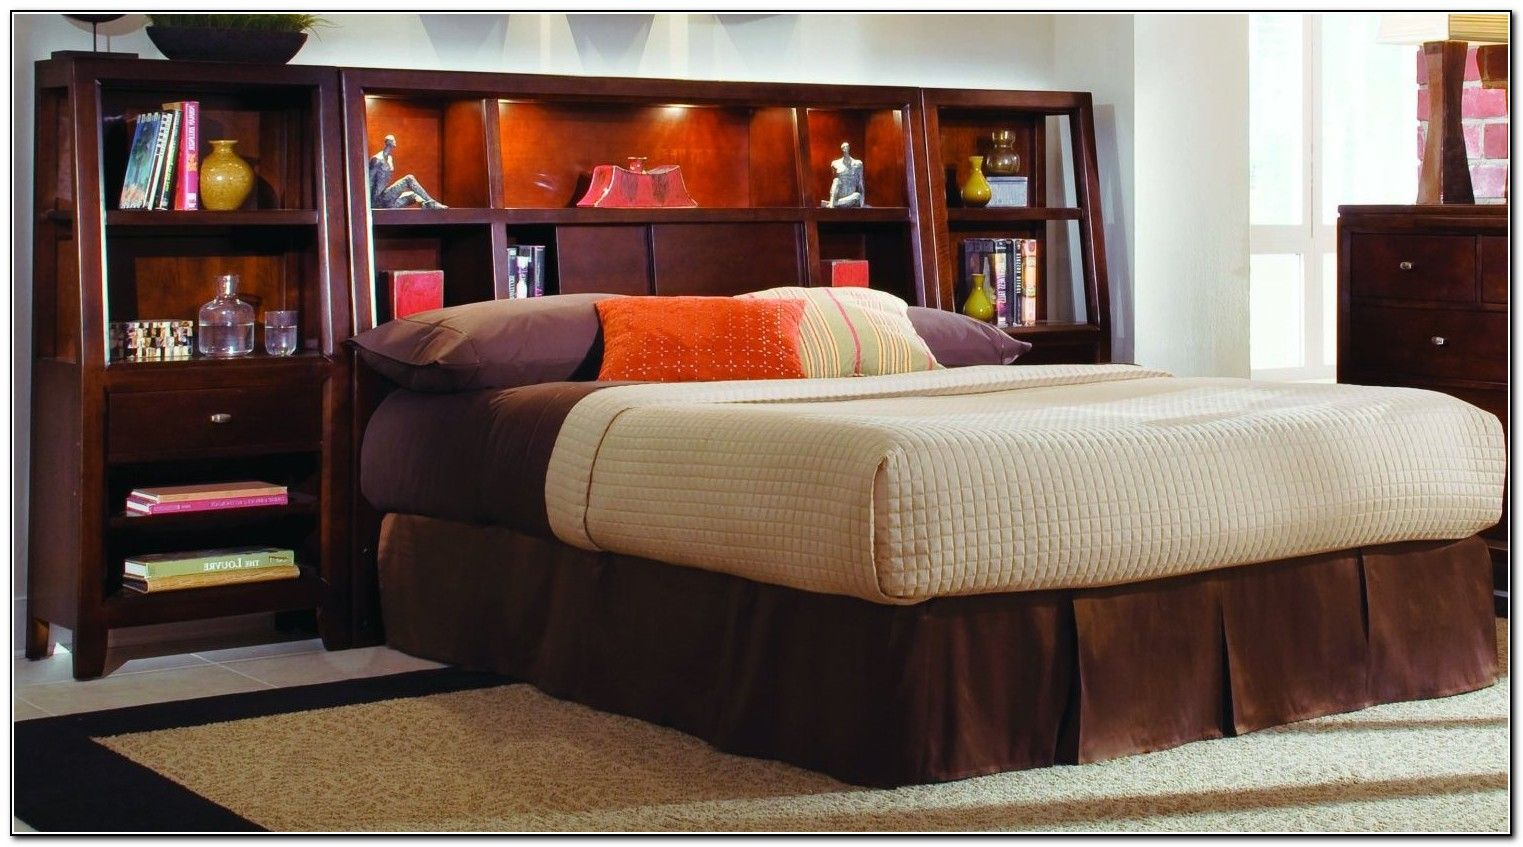 King Size Storage Bed With Bookcase Headboard King Size Bed Headboard Headboard With Shelves Headboards For Beds